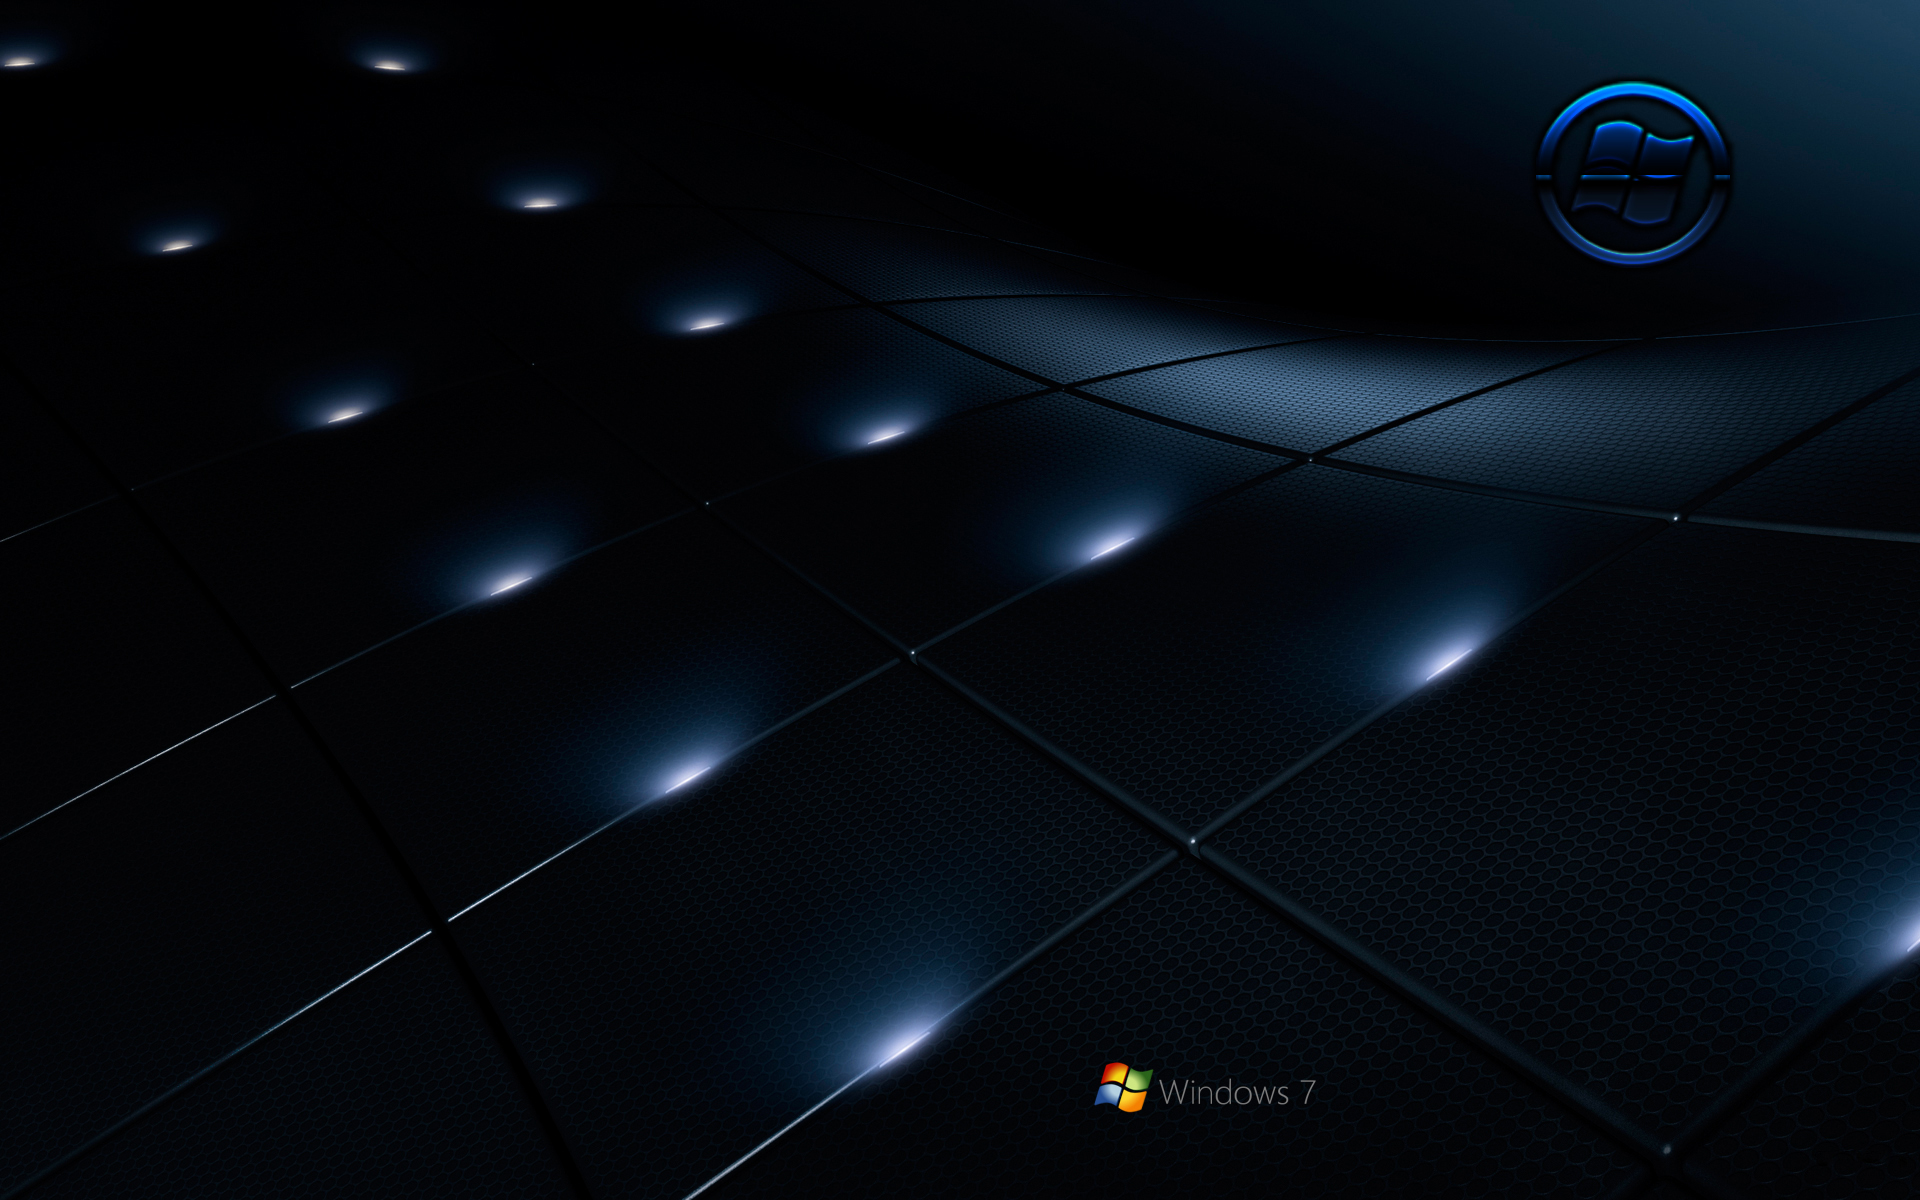 windows 7 black wallpaper by kubines customization wallpaper mac pc os 1920x1200